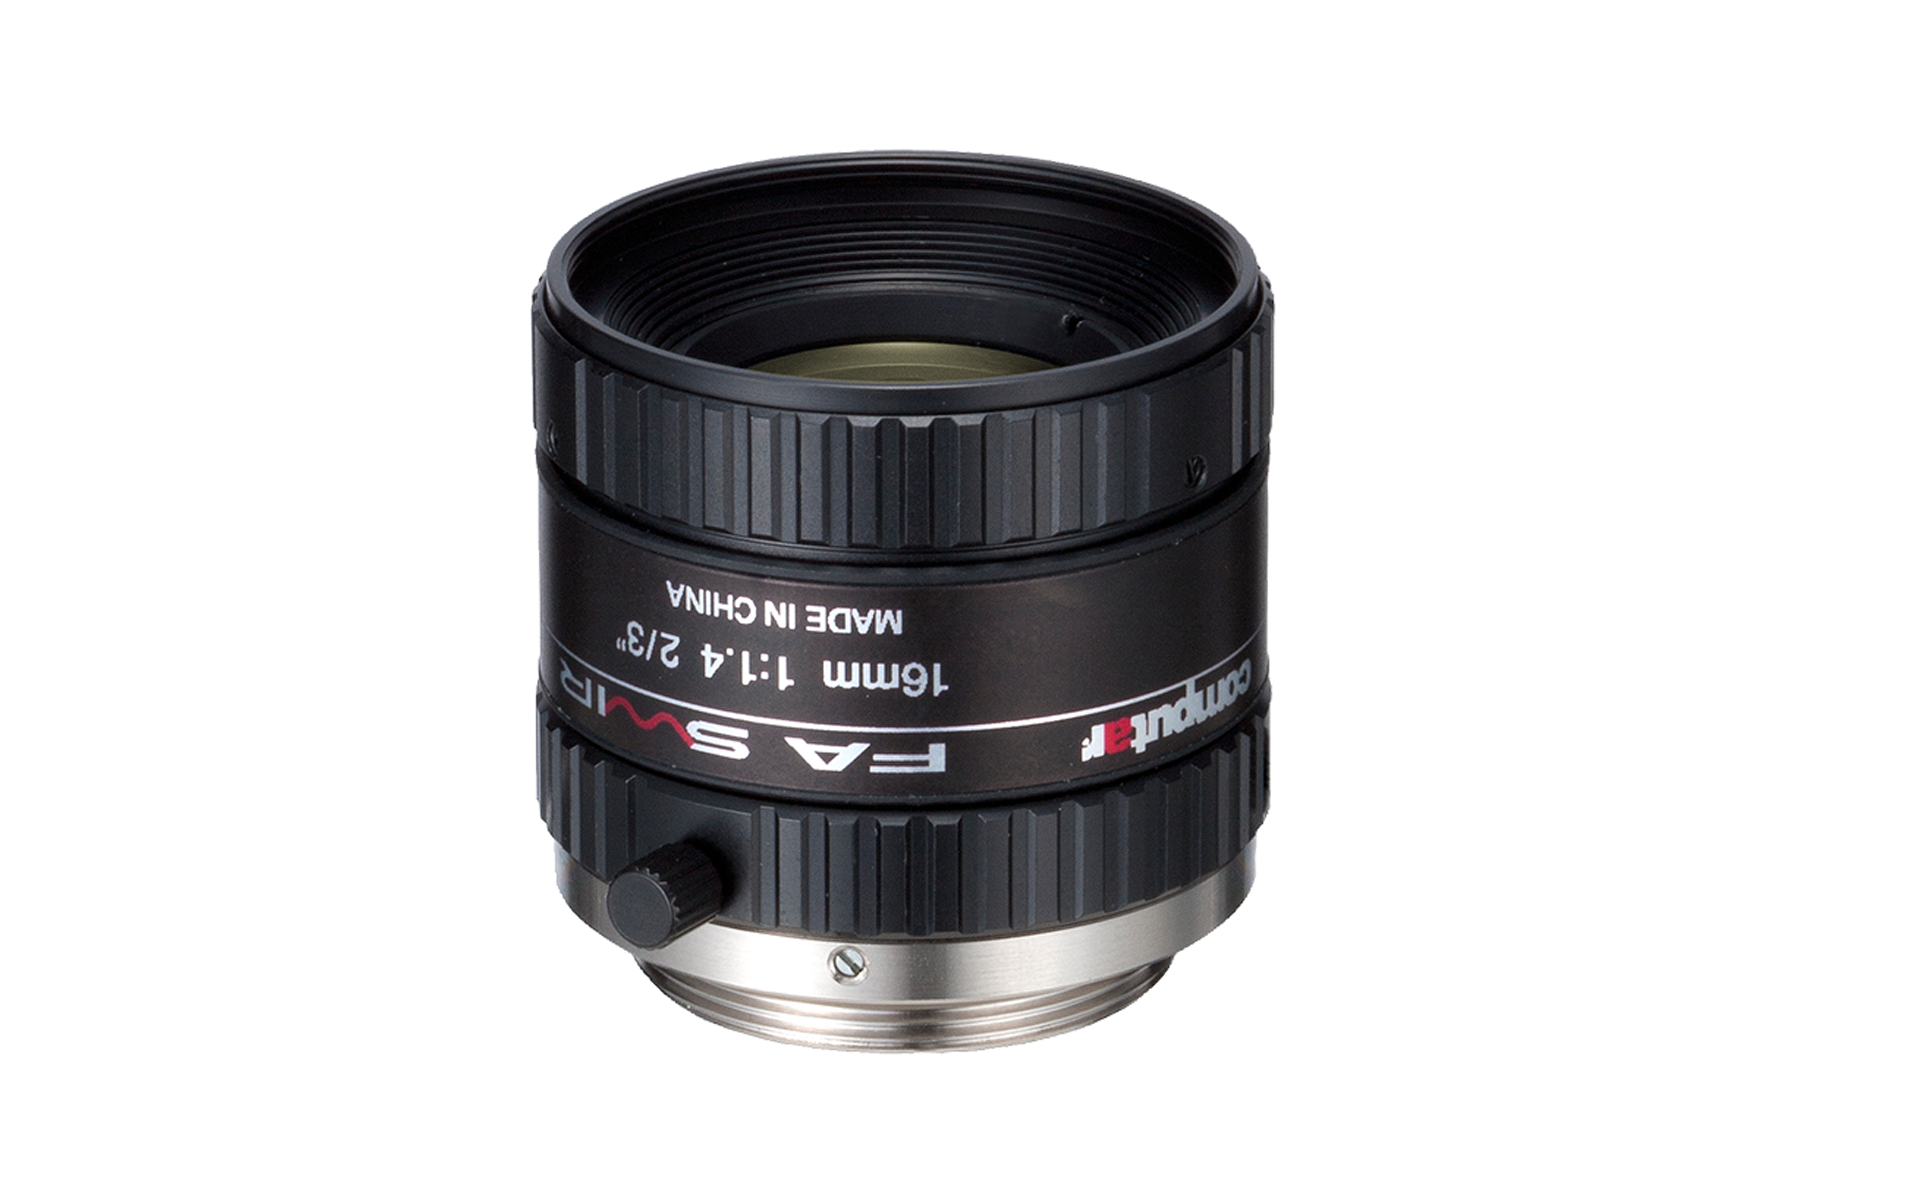 SWIR (800-1700 nm) C-mount lens, 16 mm, F1.4, for 2/3